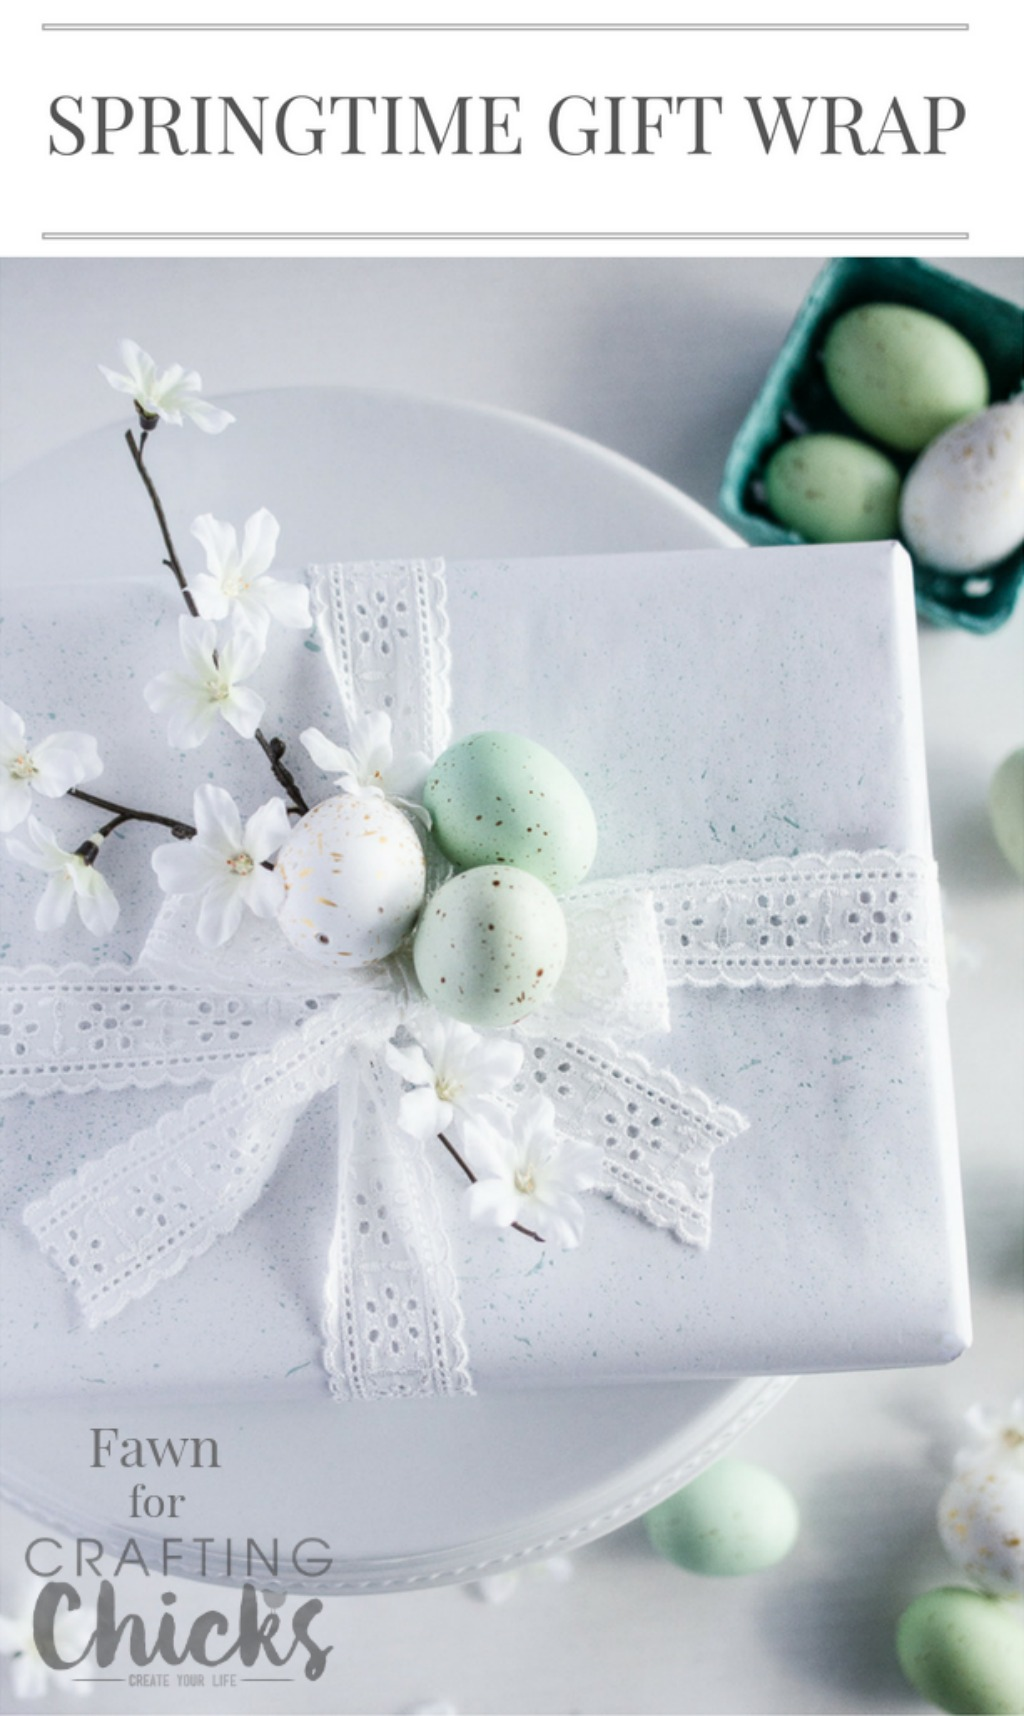 springtime gift wrap idea